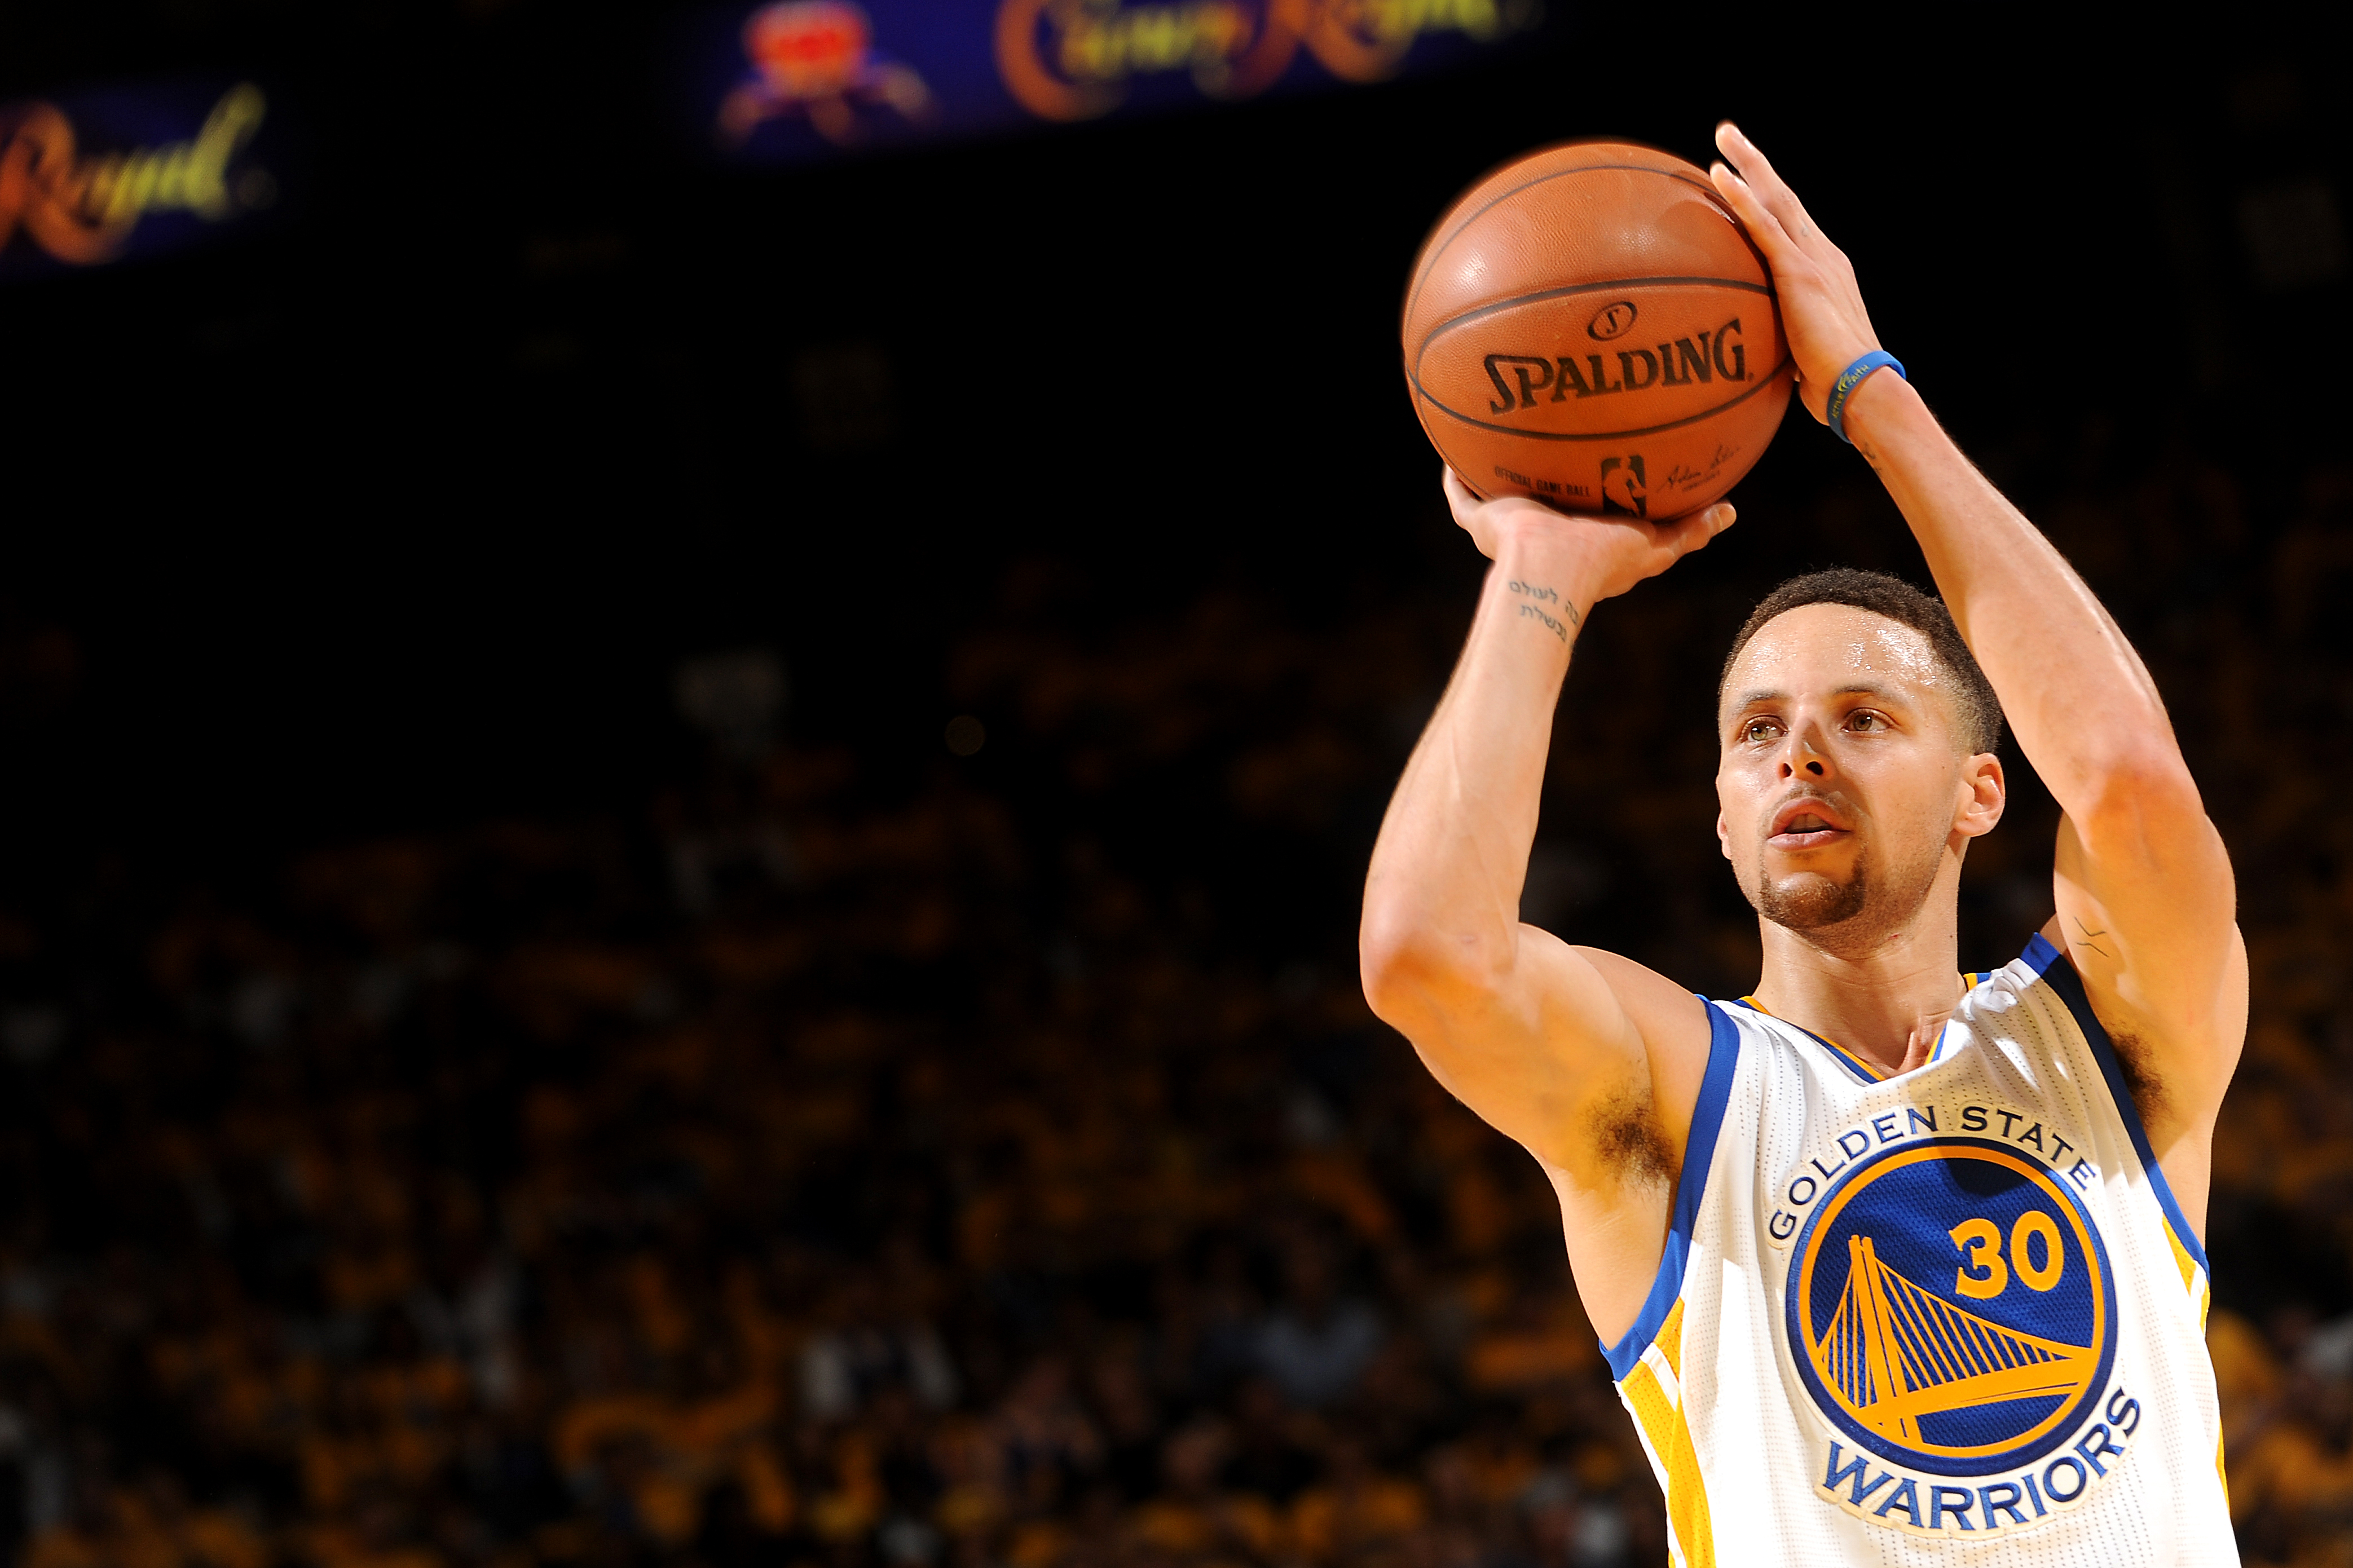 OAKLAND, CA - APRIL 16: Stephen Curry #30 of the Golden State Warriors shoots the ball during the game against the Houston Rockets in Game One of the Western Conference Quarterfinals during the 2016 NBA Playoffs April 16, 2016 at ORACLE Arena in Oakland,